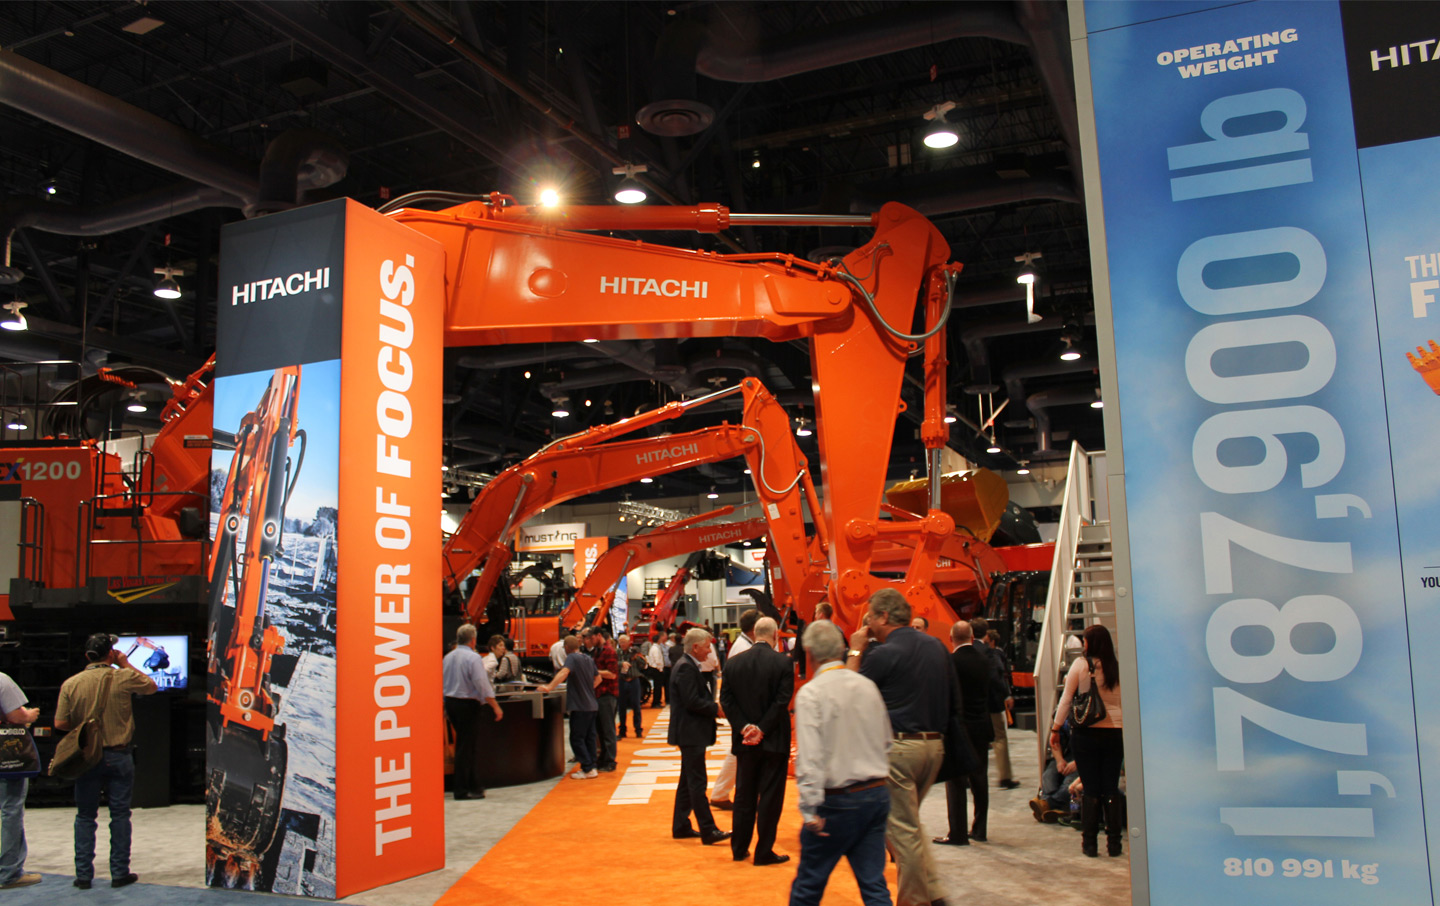 Hitachi ConExpo Trade Show